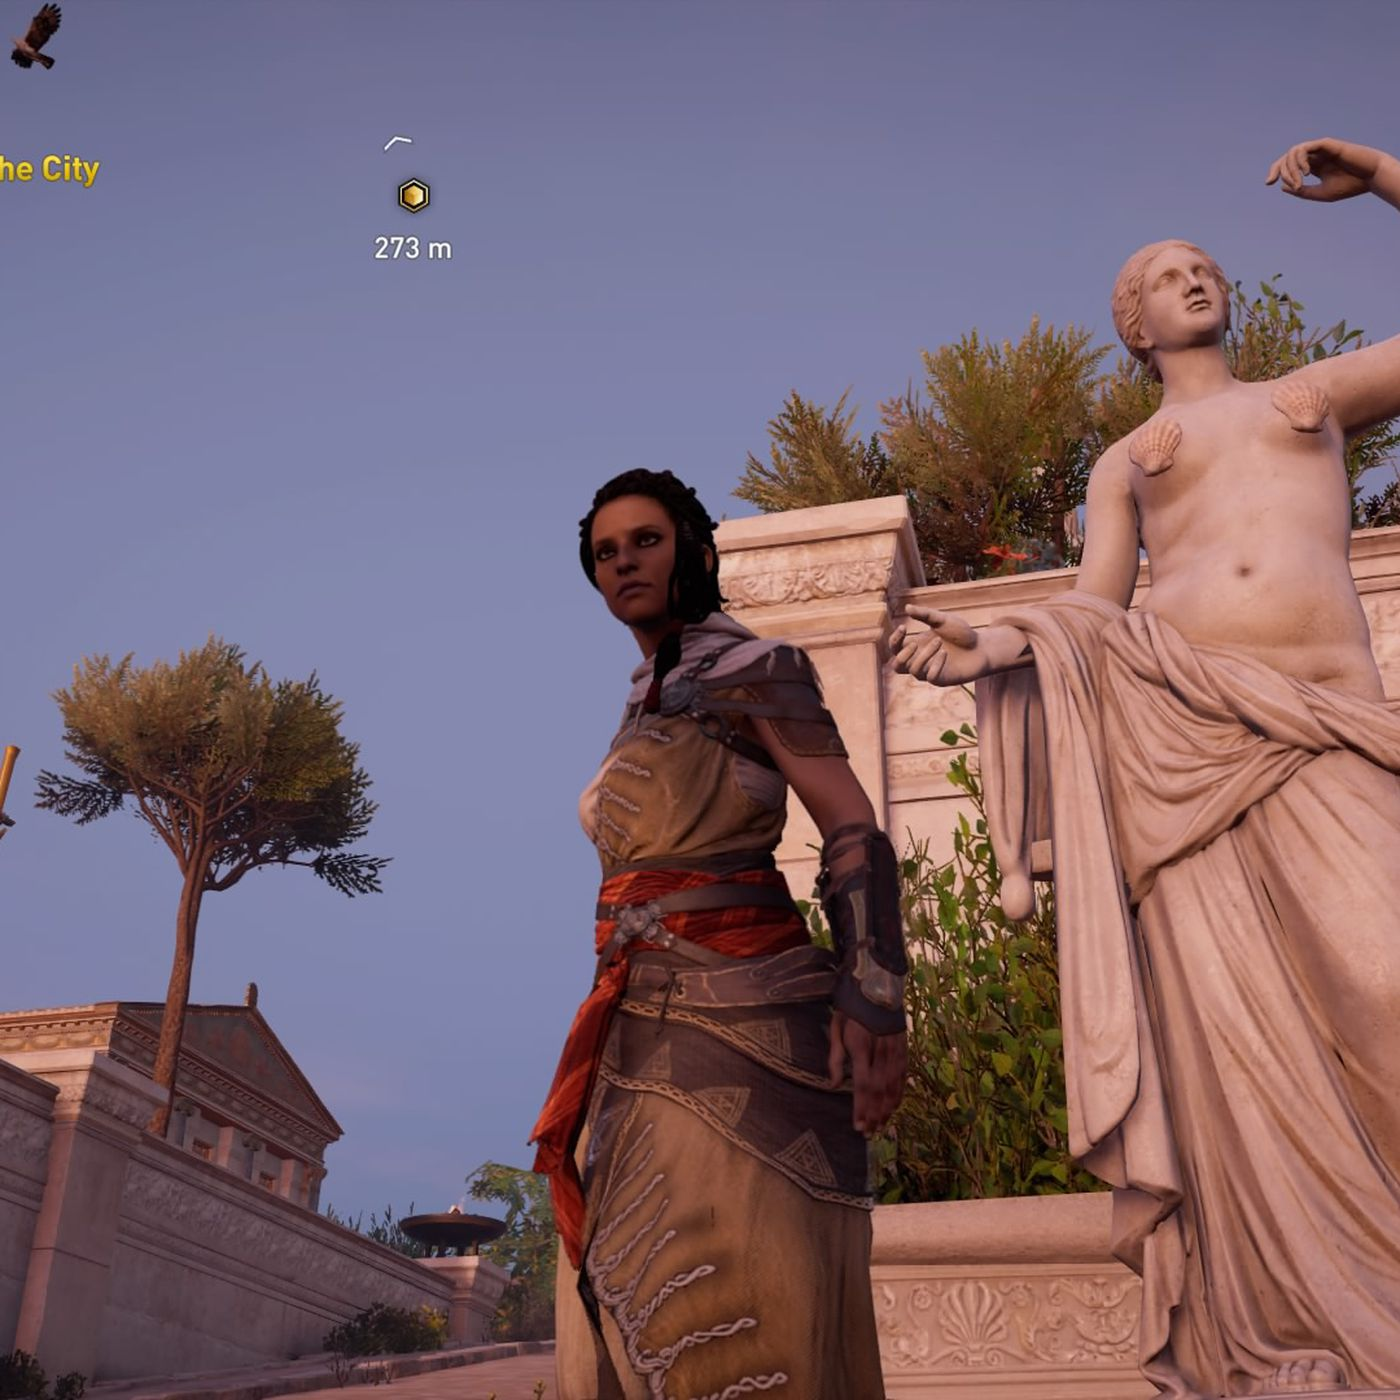 Assassin S Creed Origins Guided Tour Mode Covers Up Nude Statues